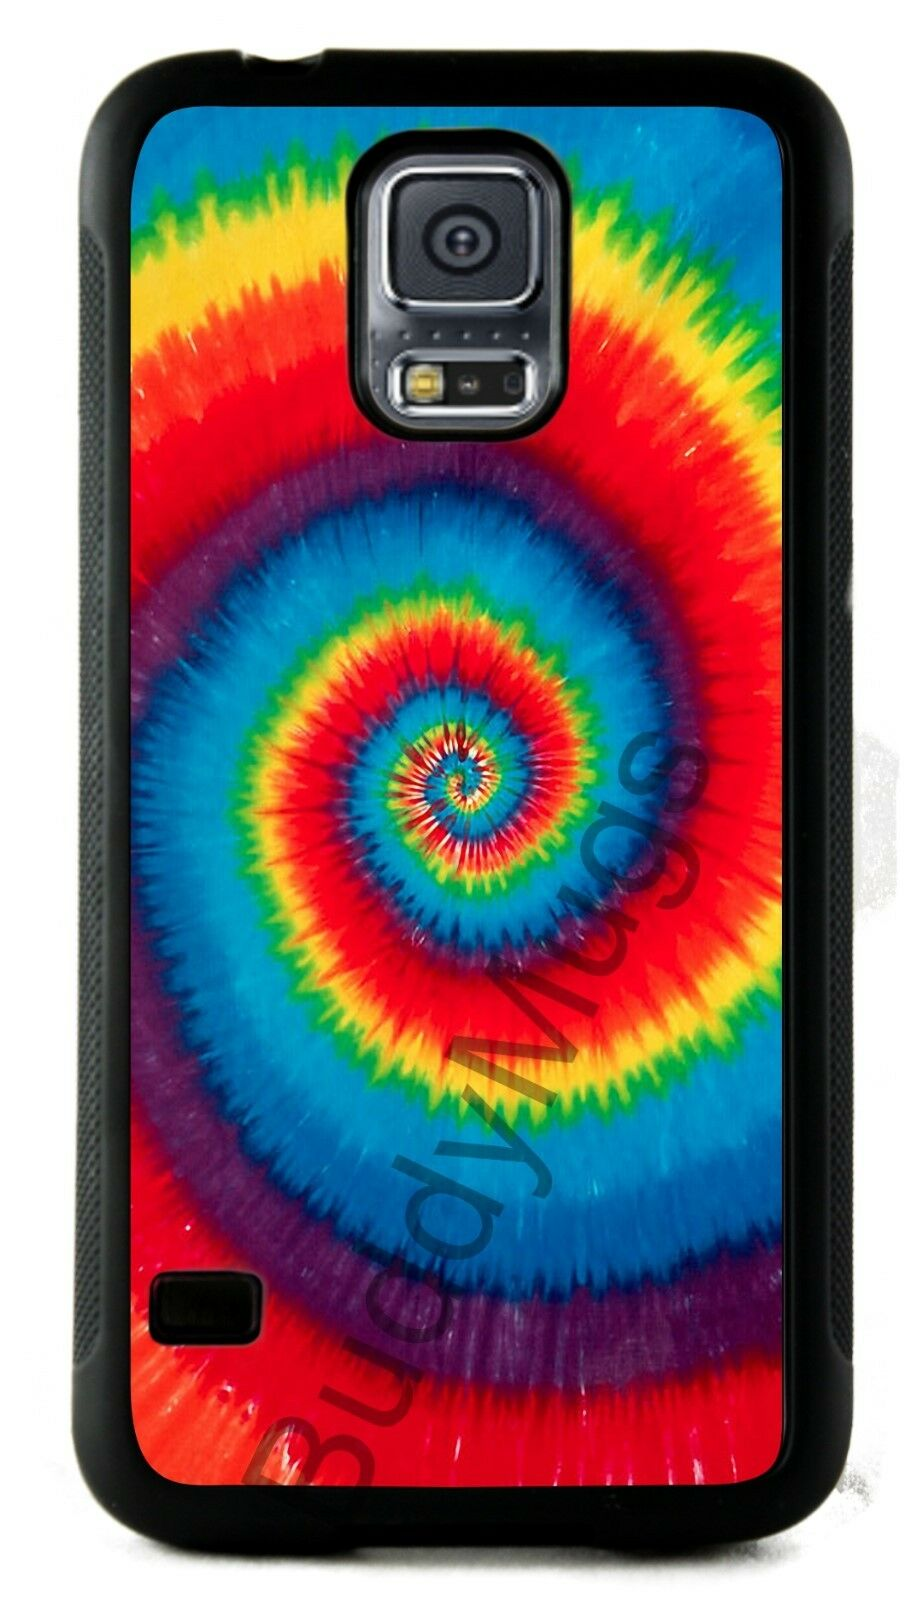 Personalized Phone Case Custom Printed Cell Phone Case Monogrammed OtterBox Tie Dye Design Samsung Case iPhone Case OtterBox Defender